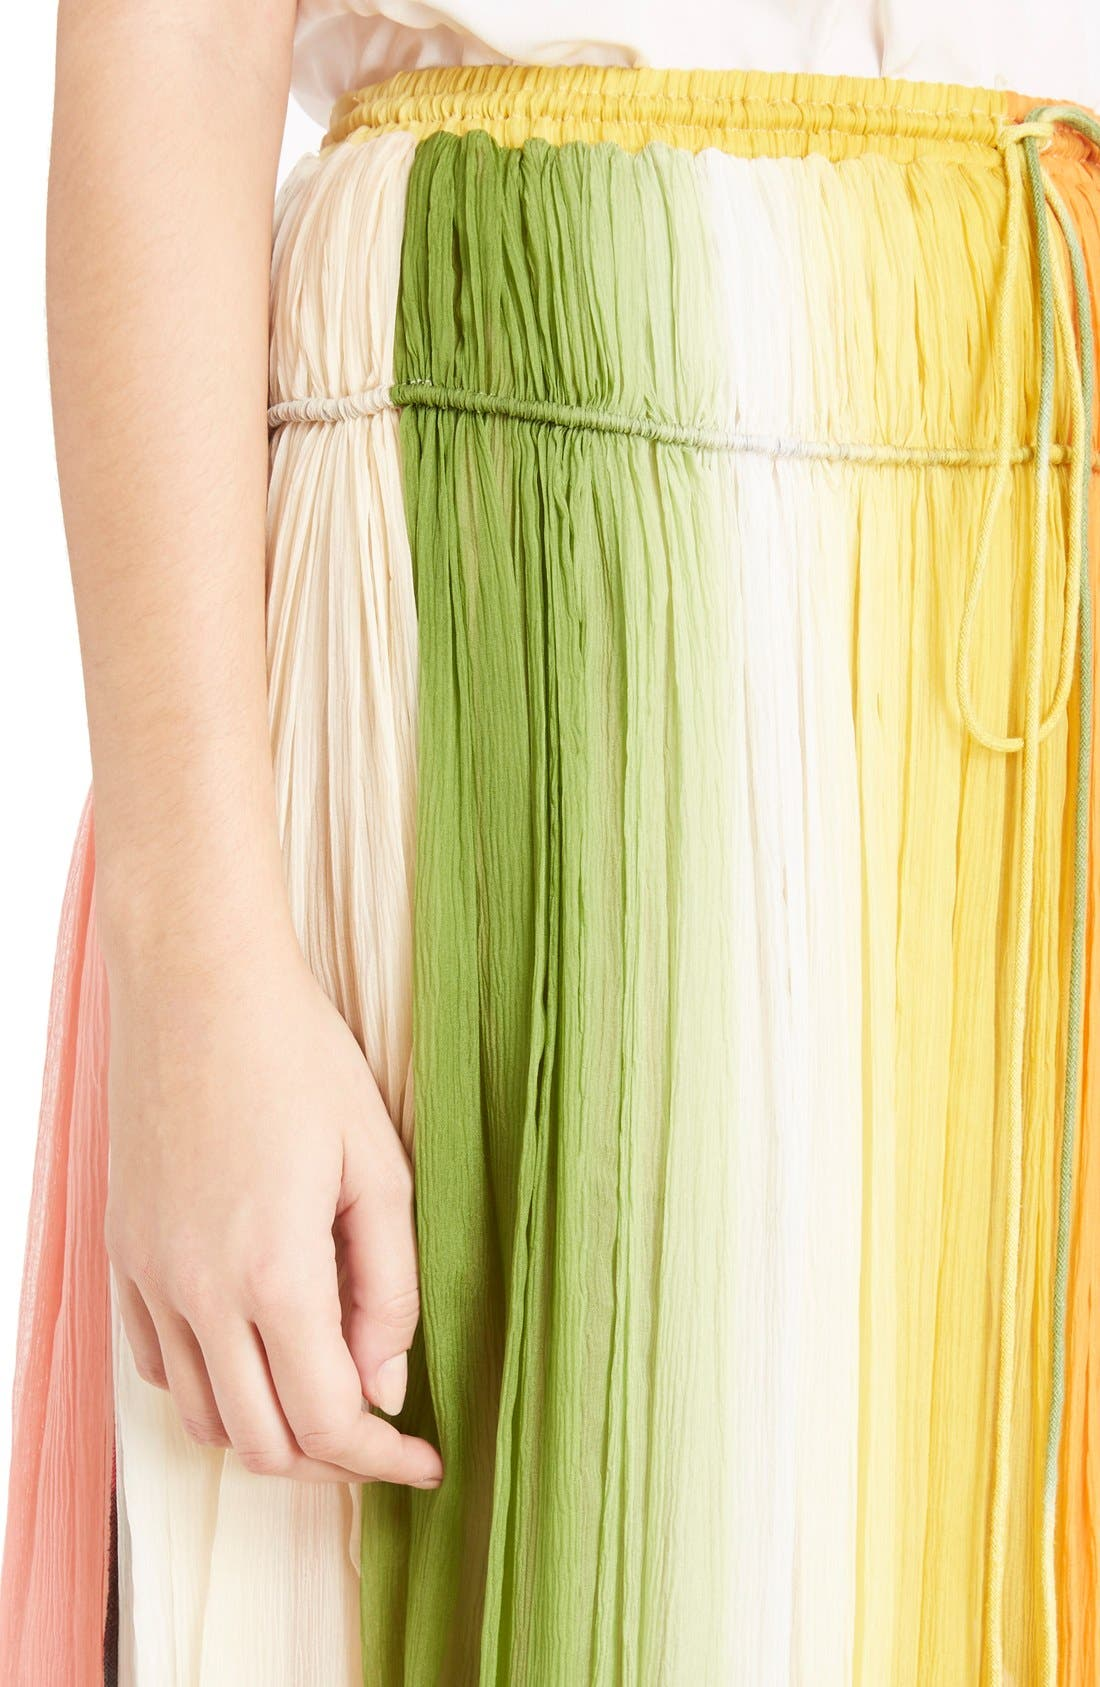 CHLOÉ,                             Stripe Pleated Silk Skirt with Tassels,                             Alternate thumbnail 3, color,                             800